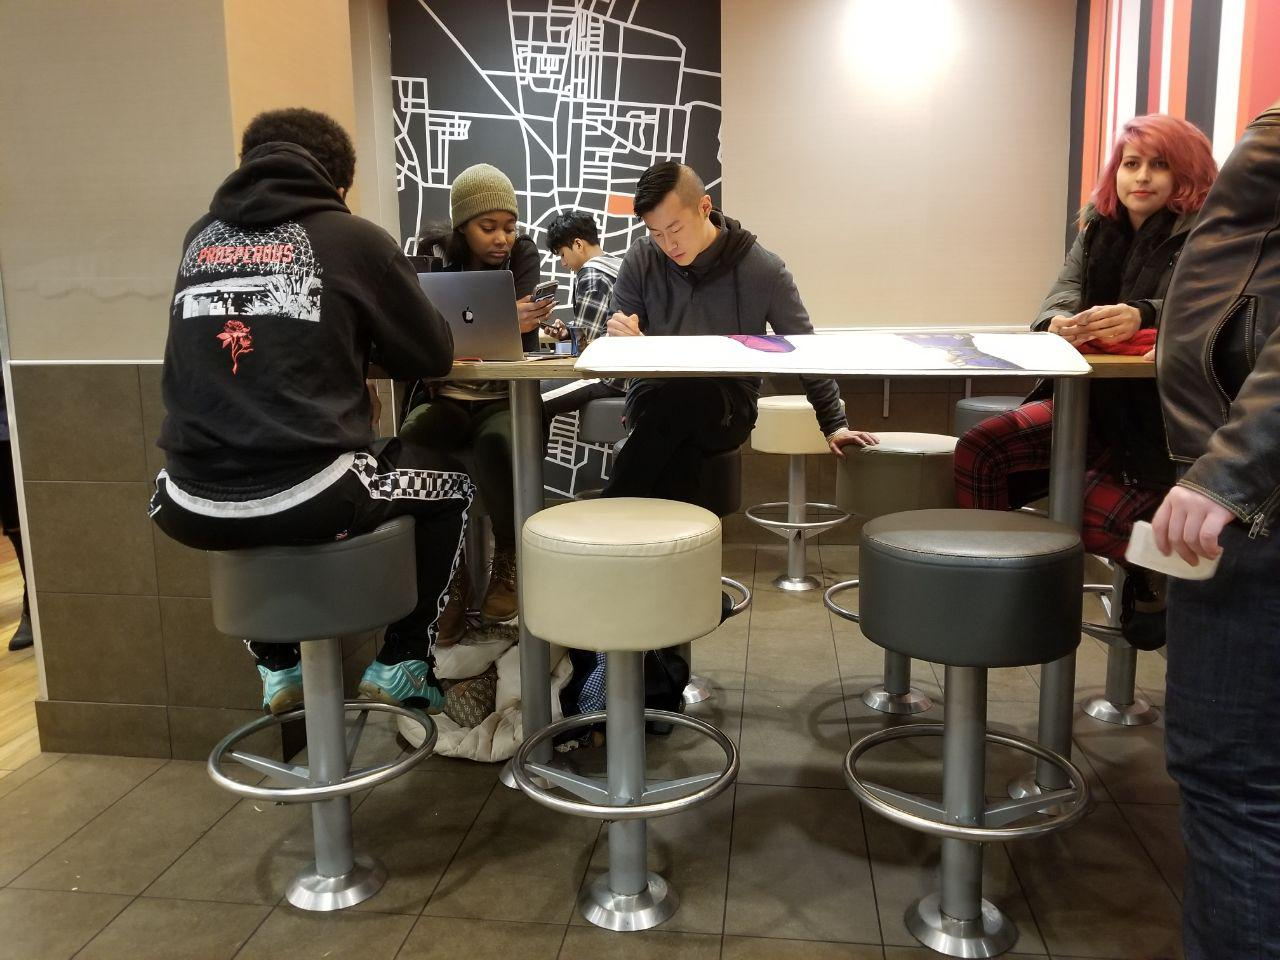 David Wang plays music at a table in the Green Street McDonald's on November 10. A prominent feature in the late-night atmosphere for the past three years, Wang, recent University graduate, announced the end of his tenure as the McDonald's DJ this summer.